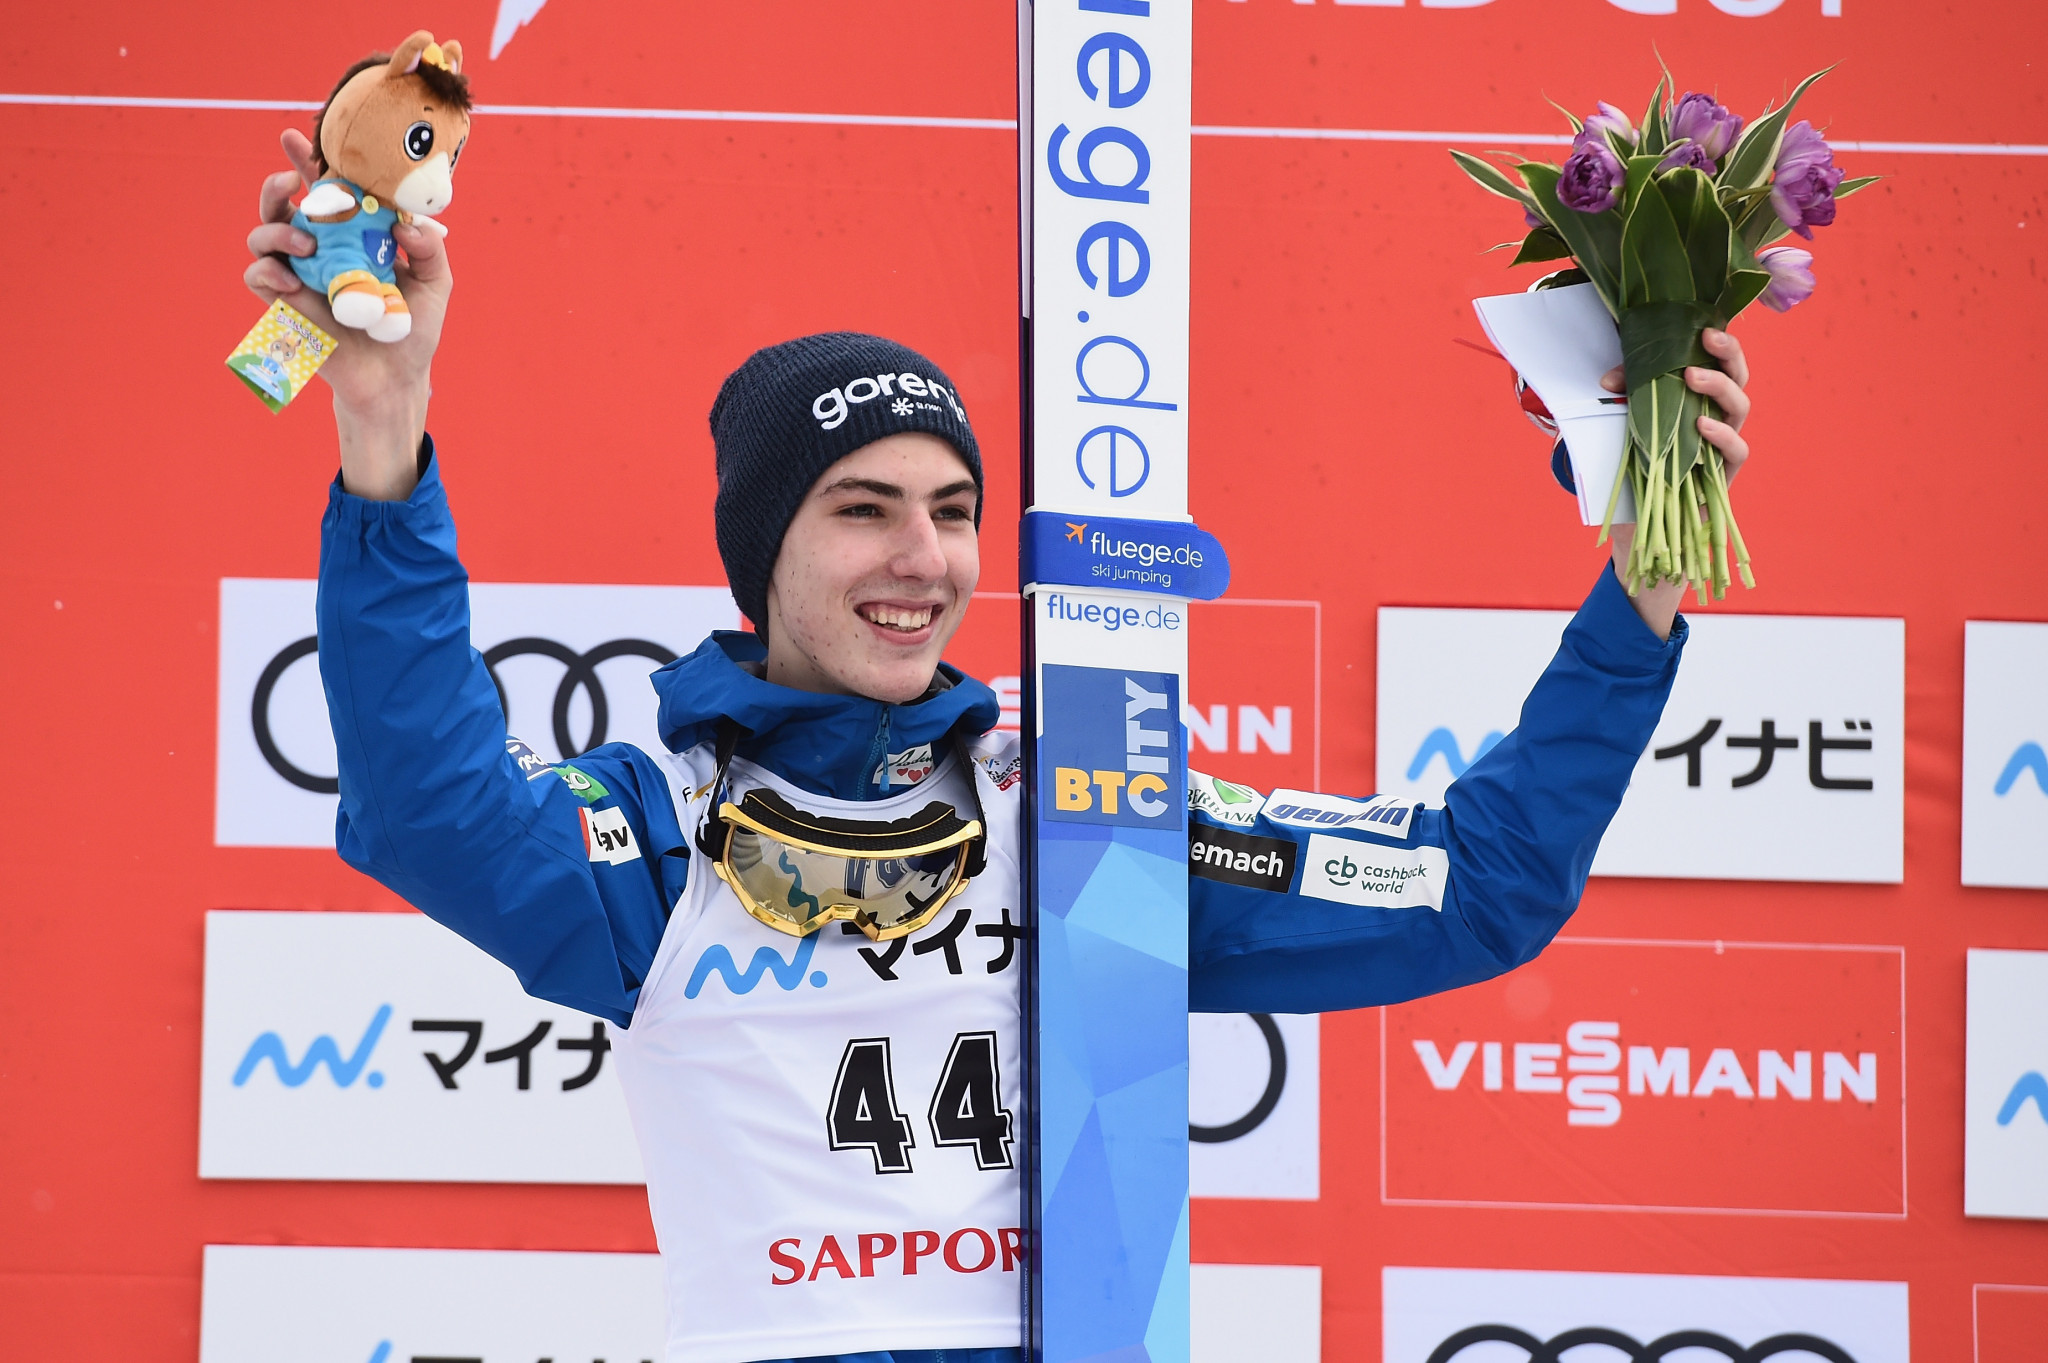 Decline continues for Kobayashi as Zajc wins first ski flying World Cup in Oberstdorf